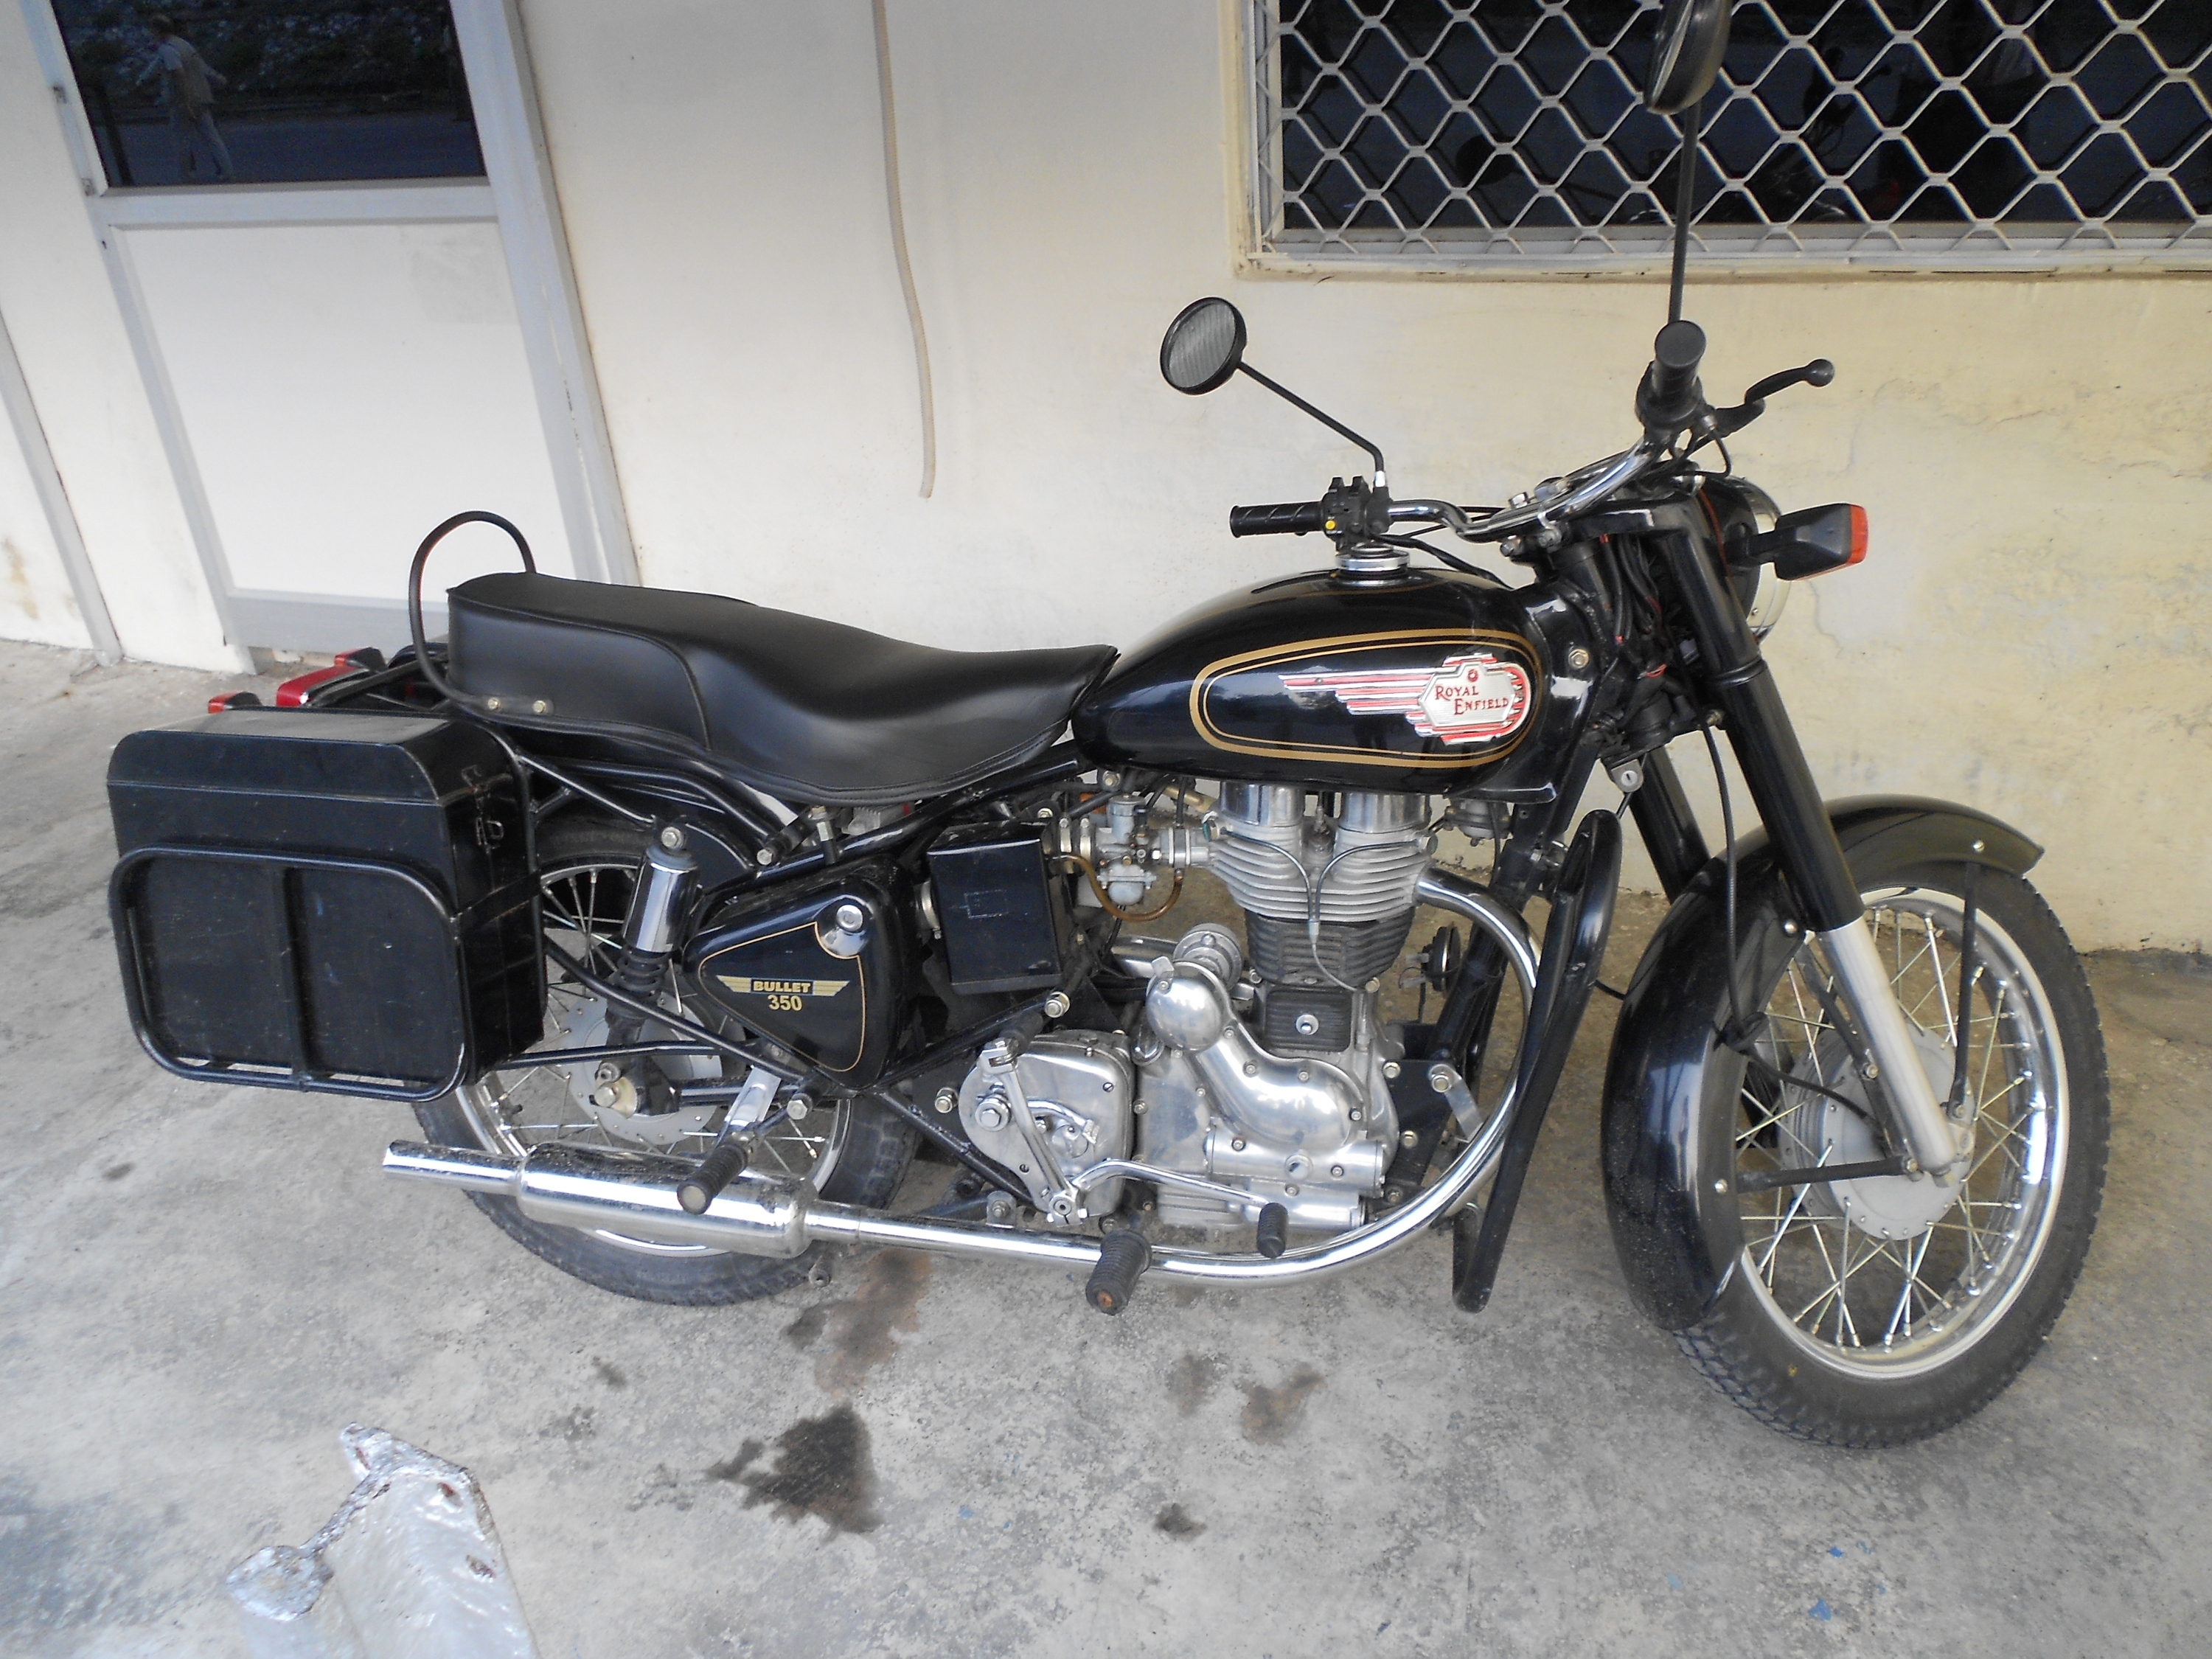 Royal Enfield Bullet 350 Army 1997 images #122762